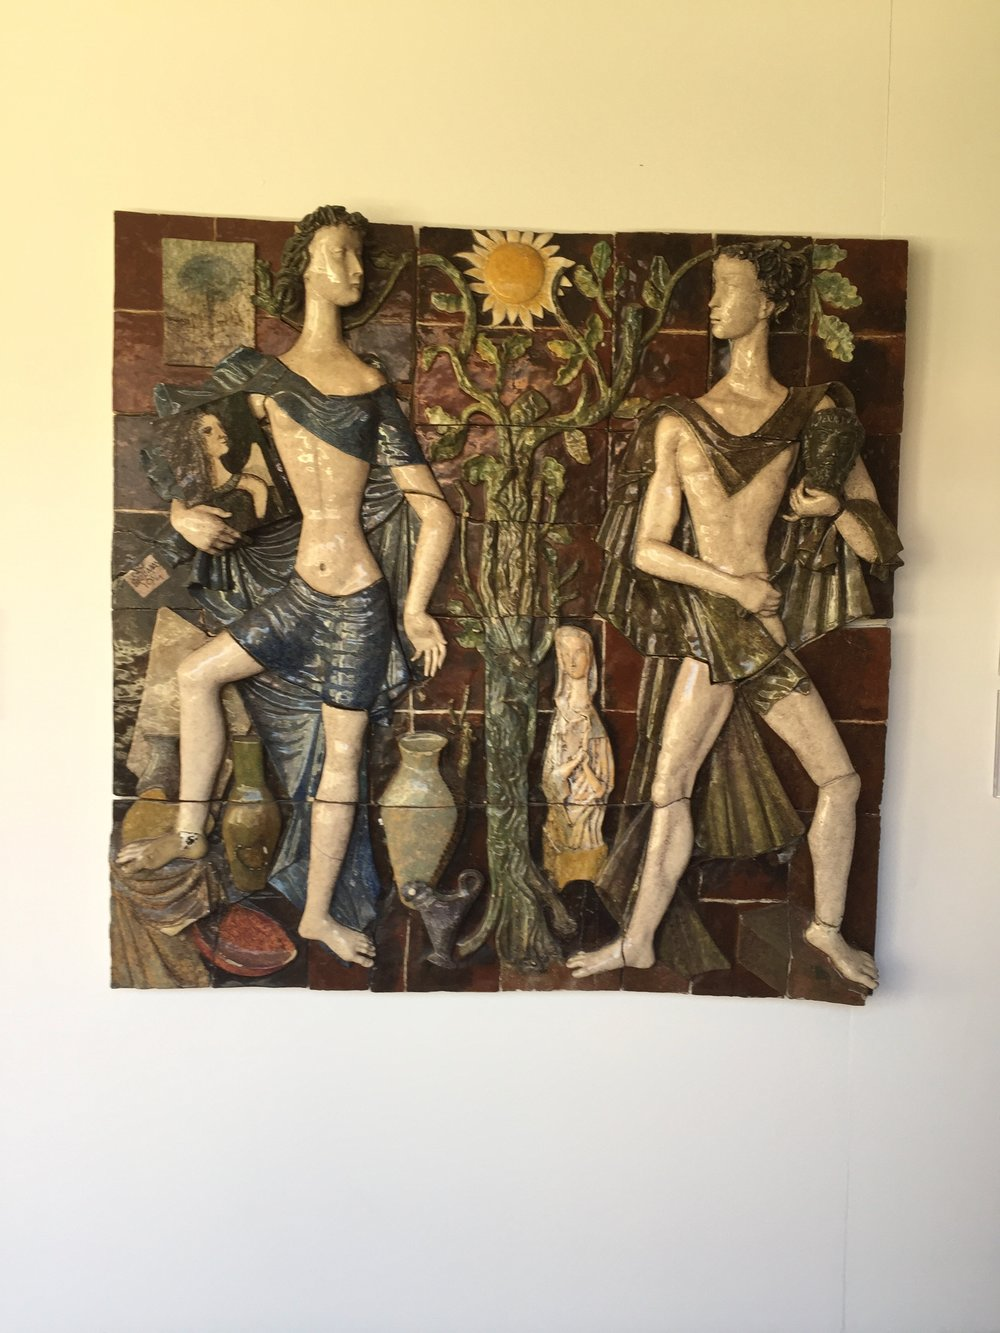 Representation of the archetypes of Sculpture and Painting in tile.